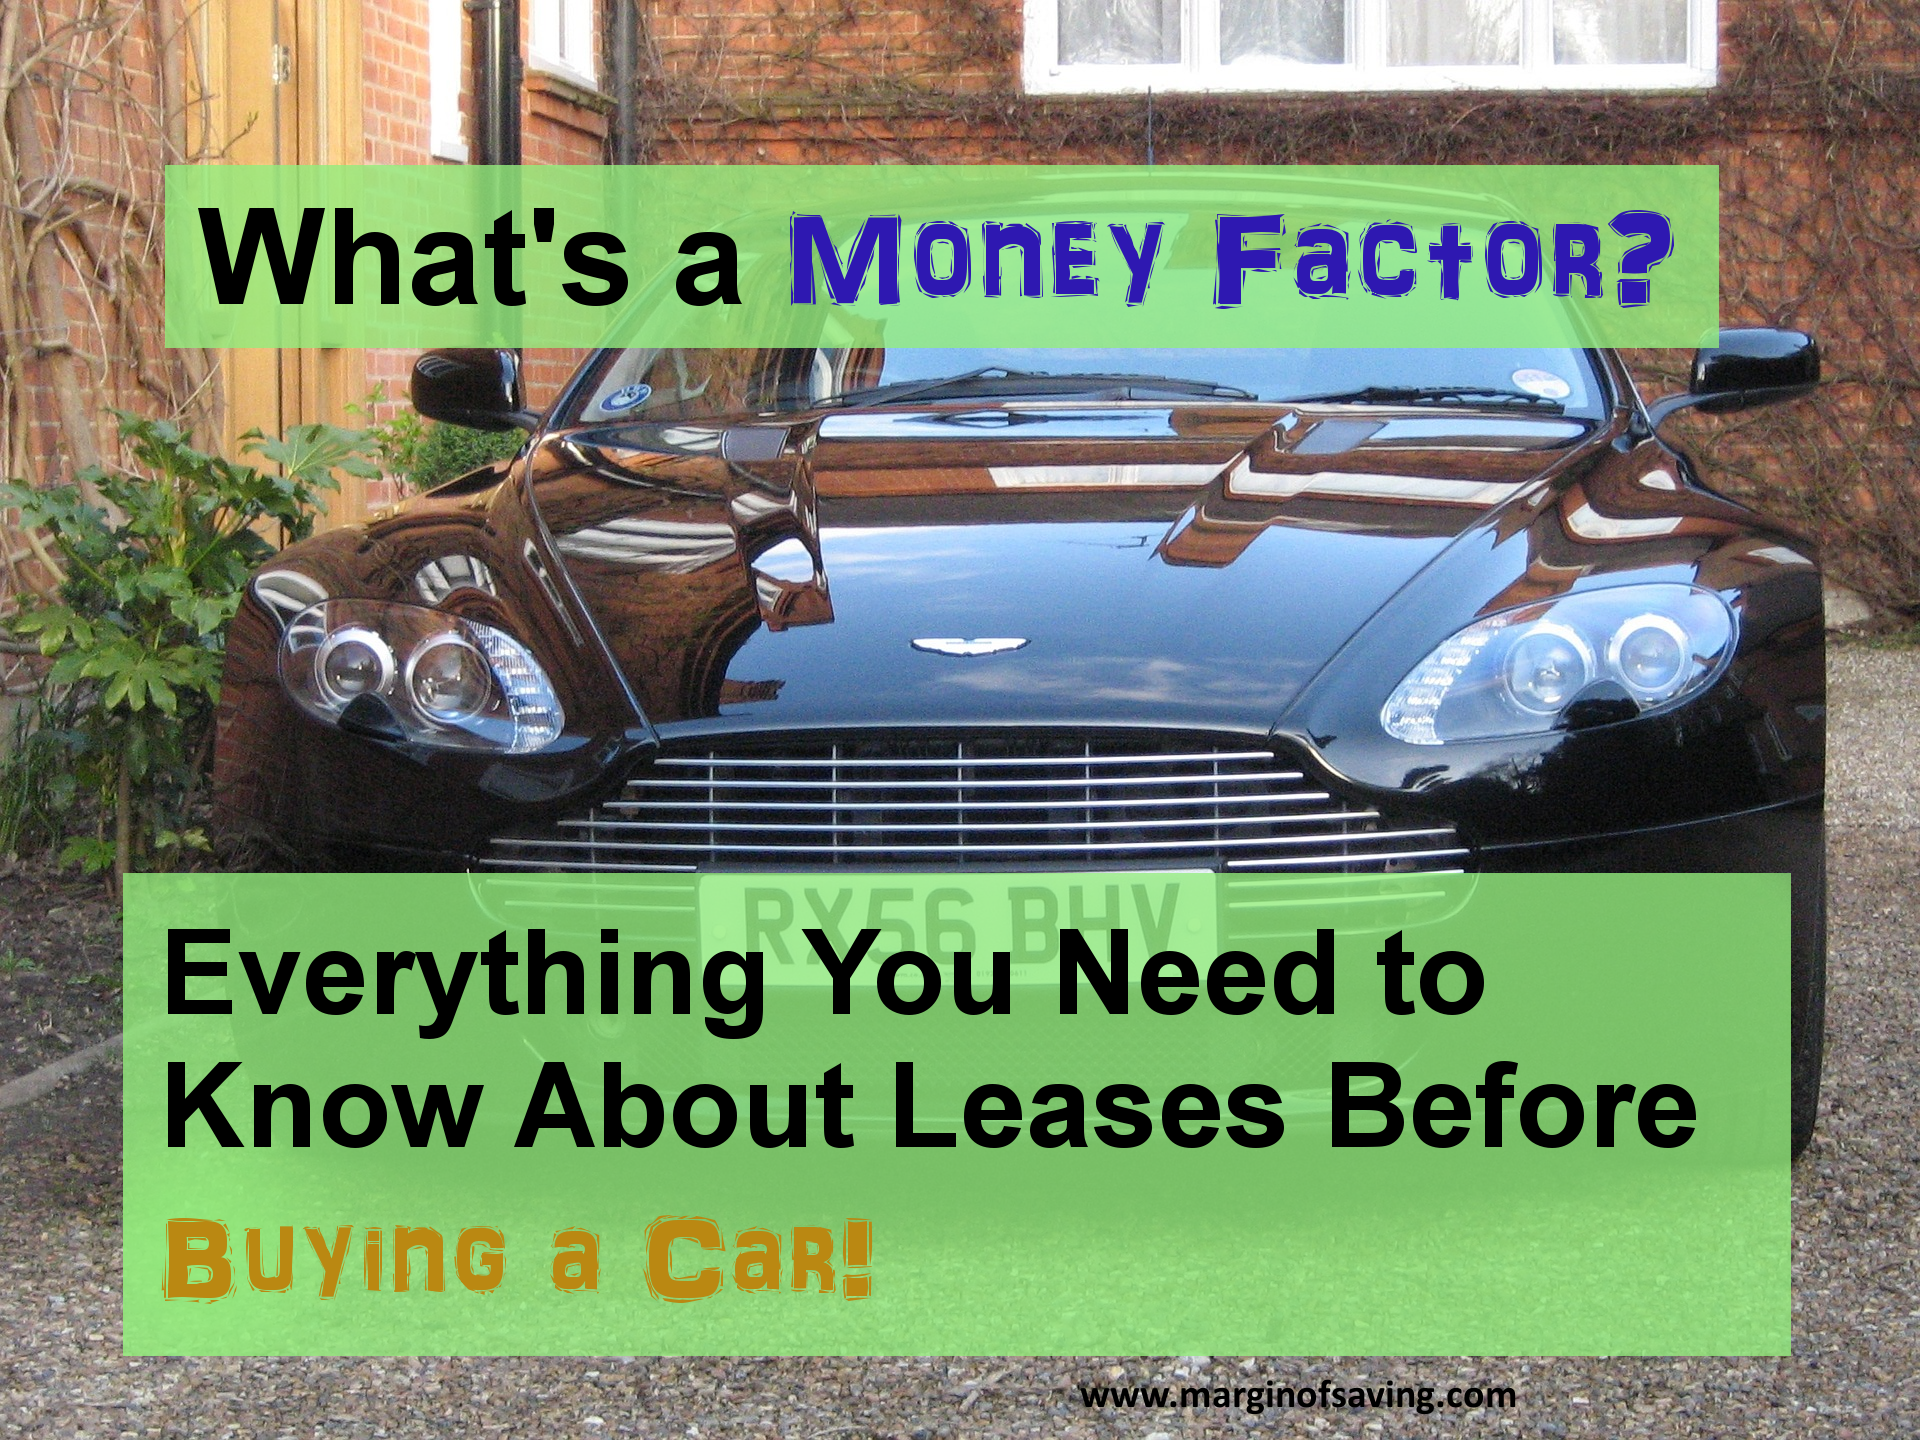 How To Calculate Money Factor For Car Lease